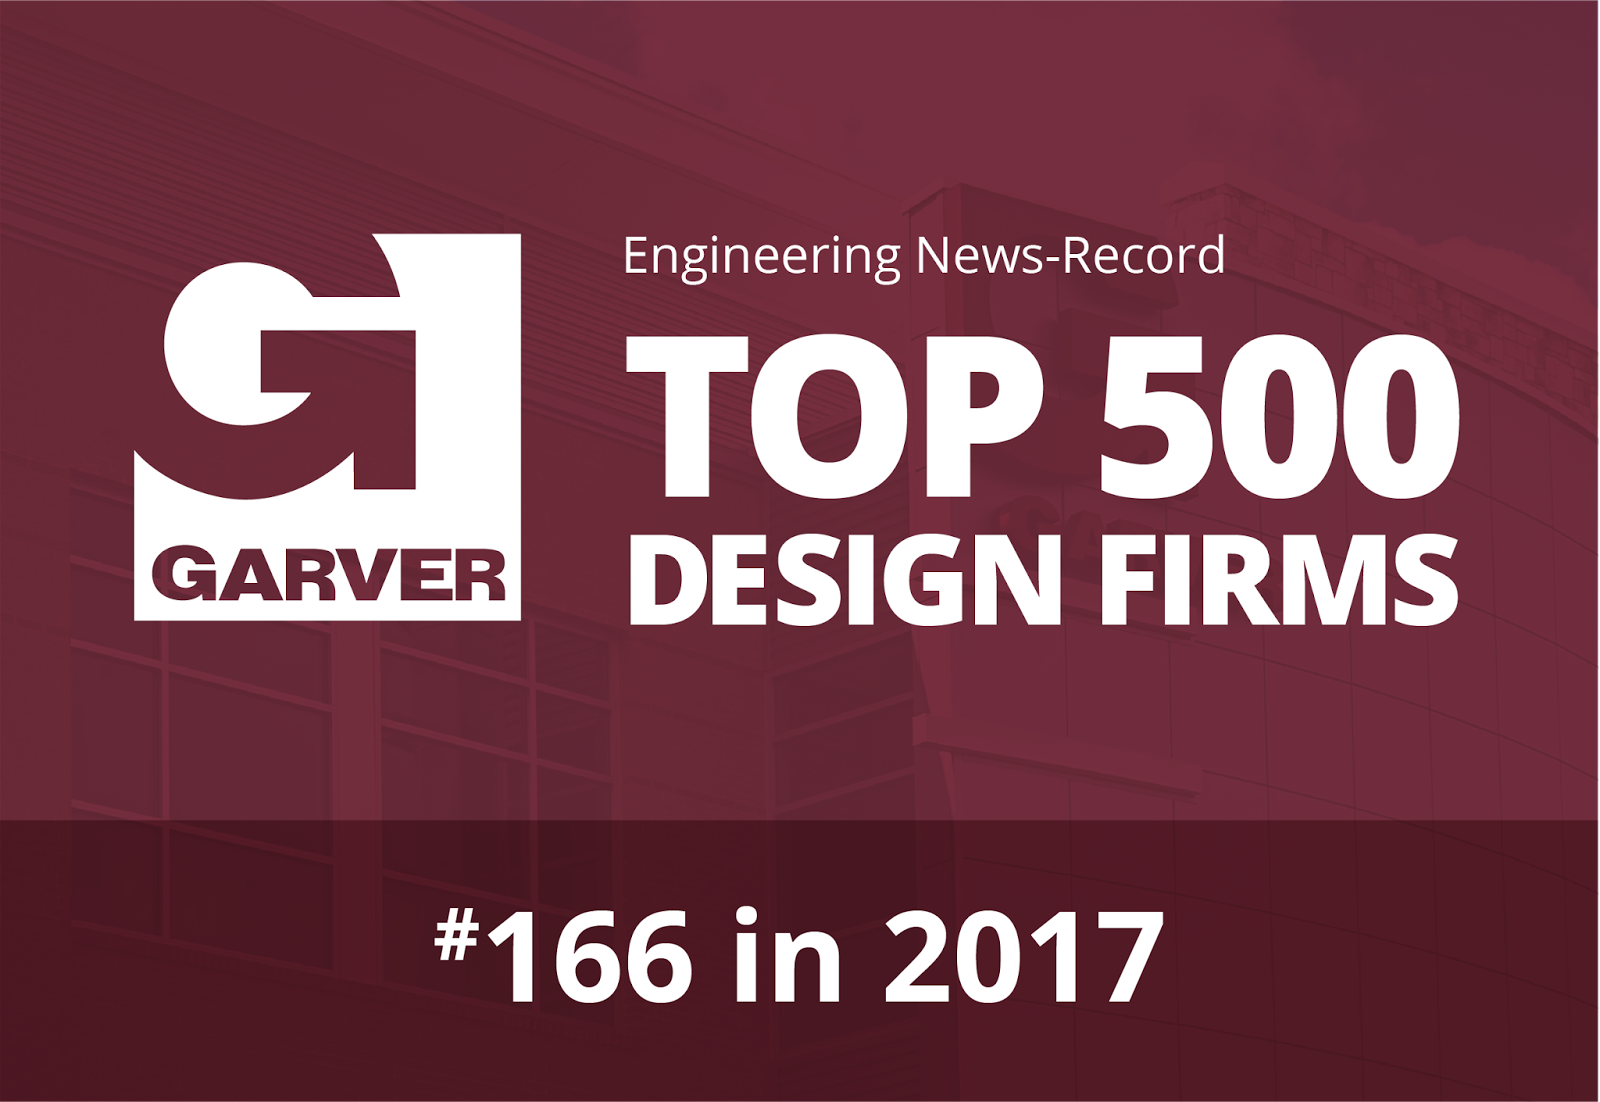 enr top 500 design firms 2017 pdf